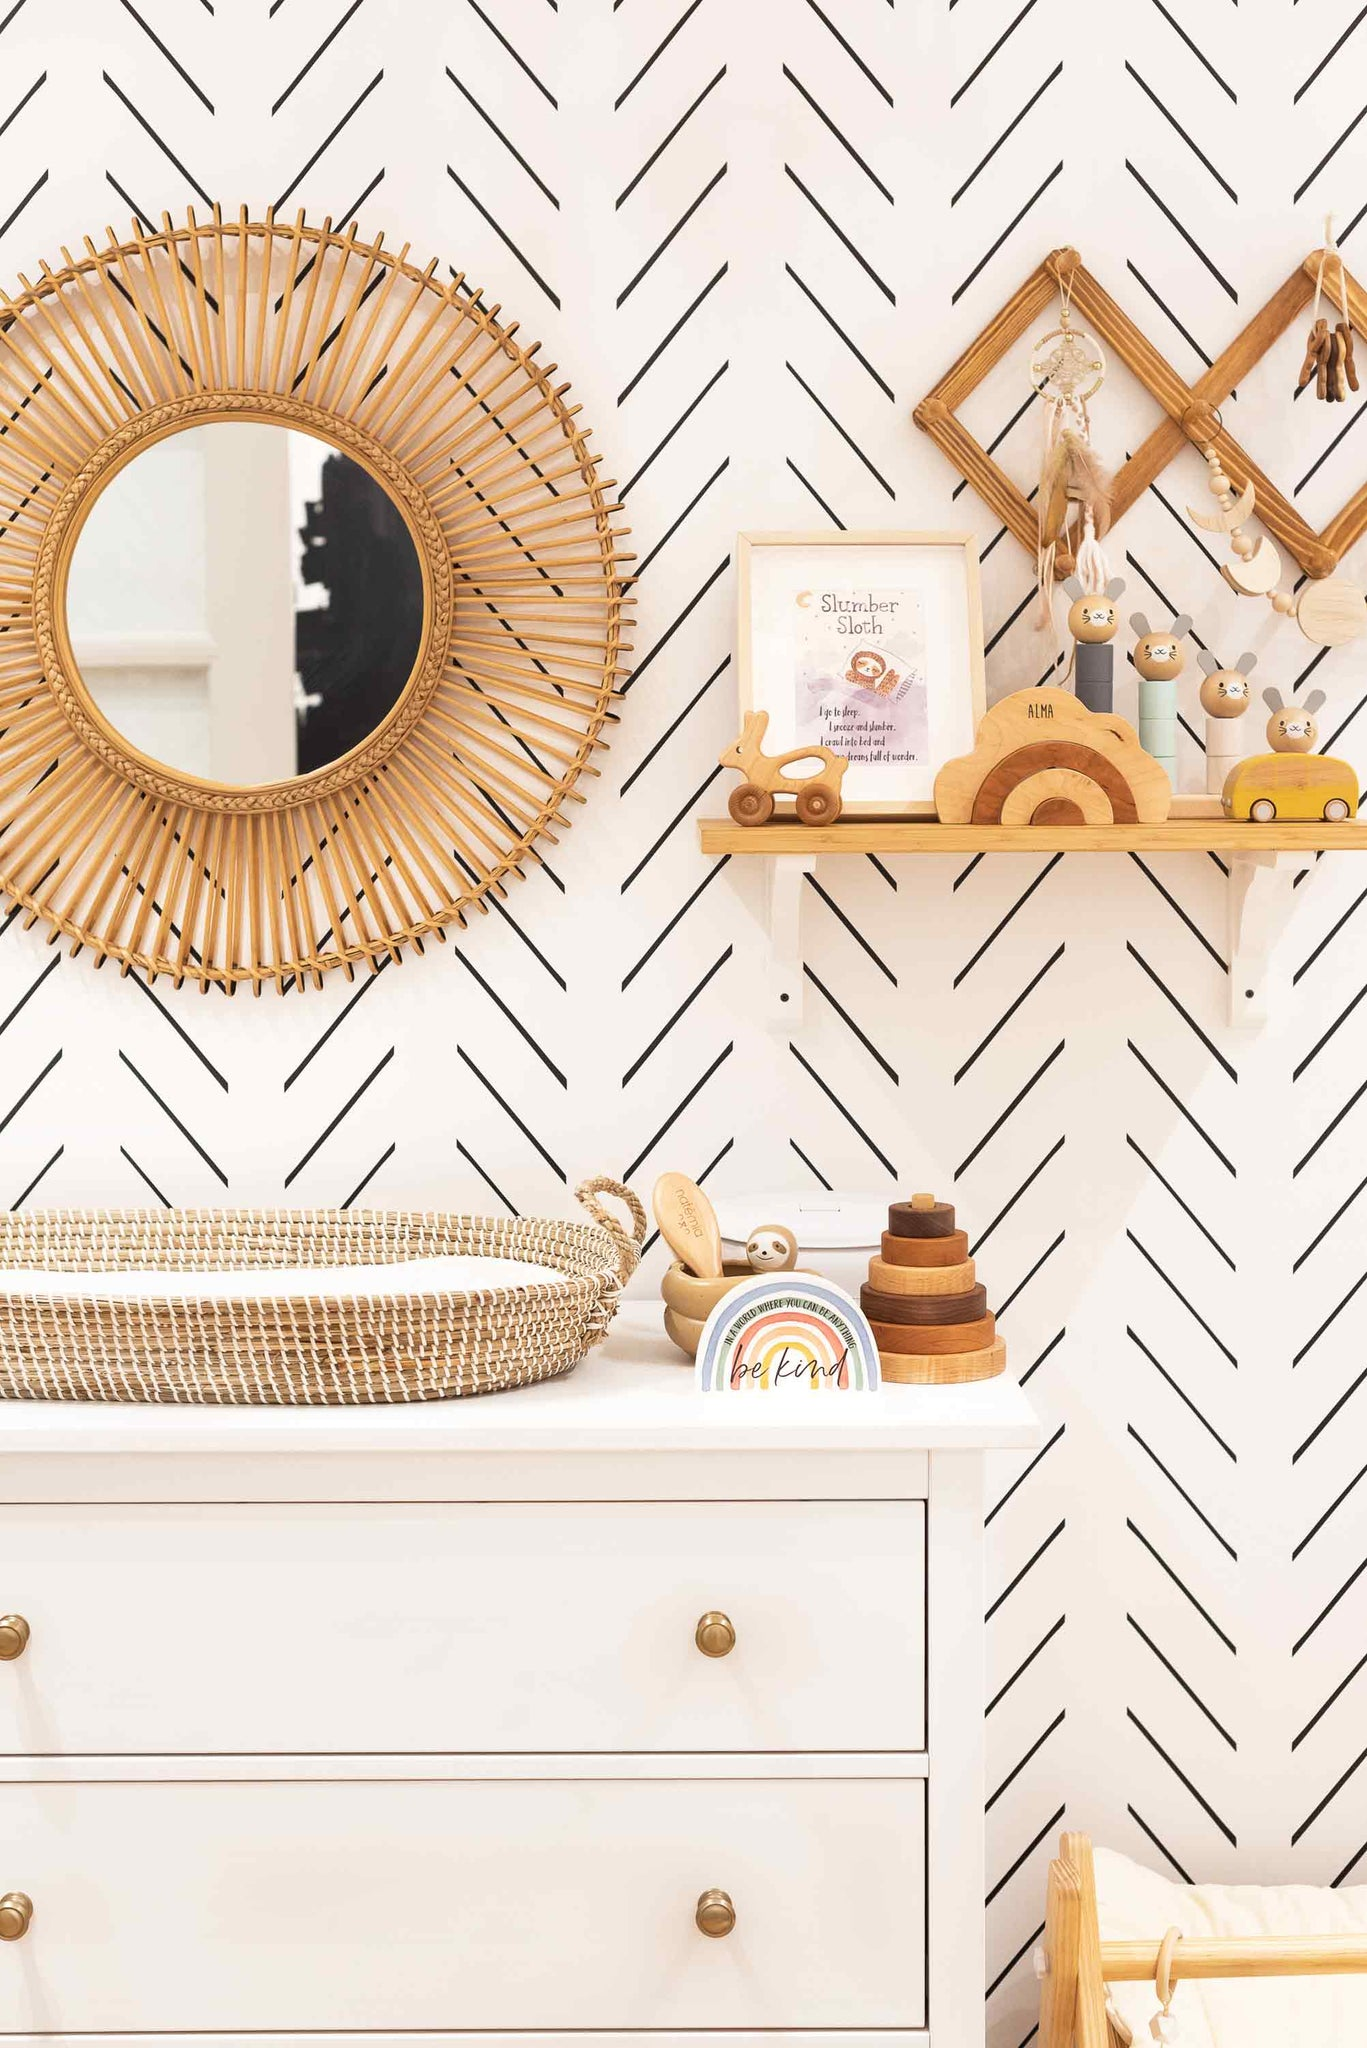 Baby changing table on a white dresser with rattan and wood interior decor and round accent mirror